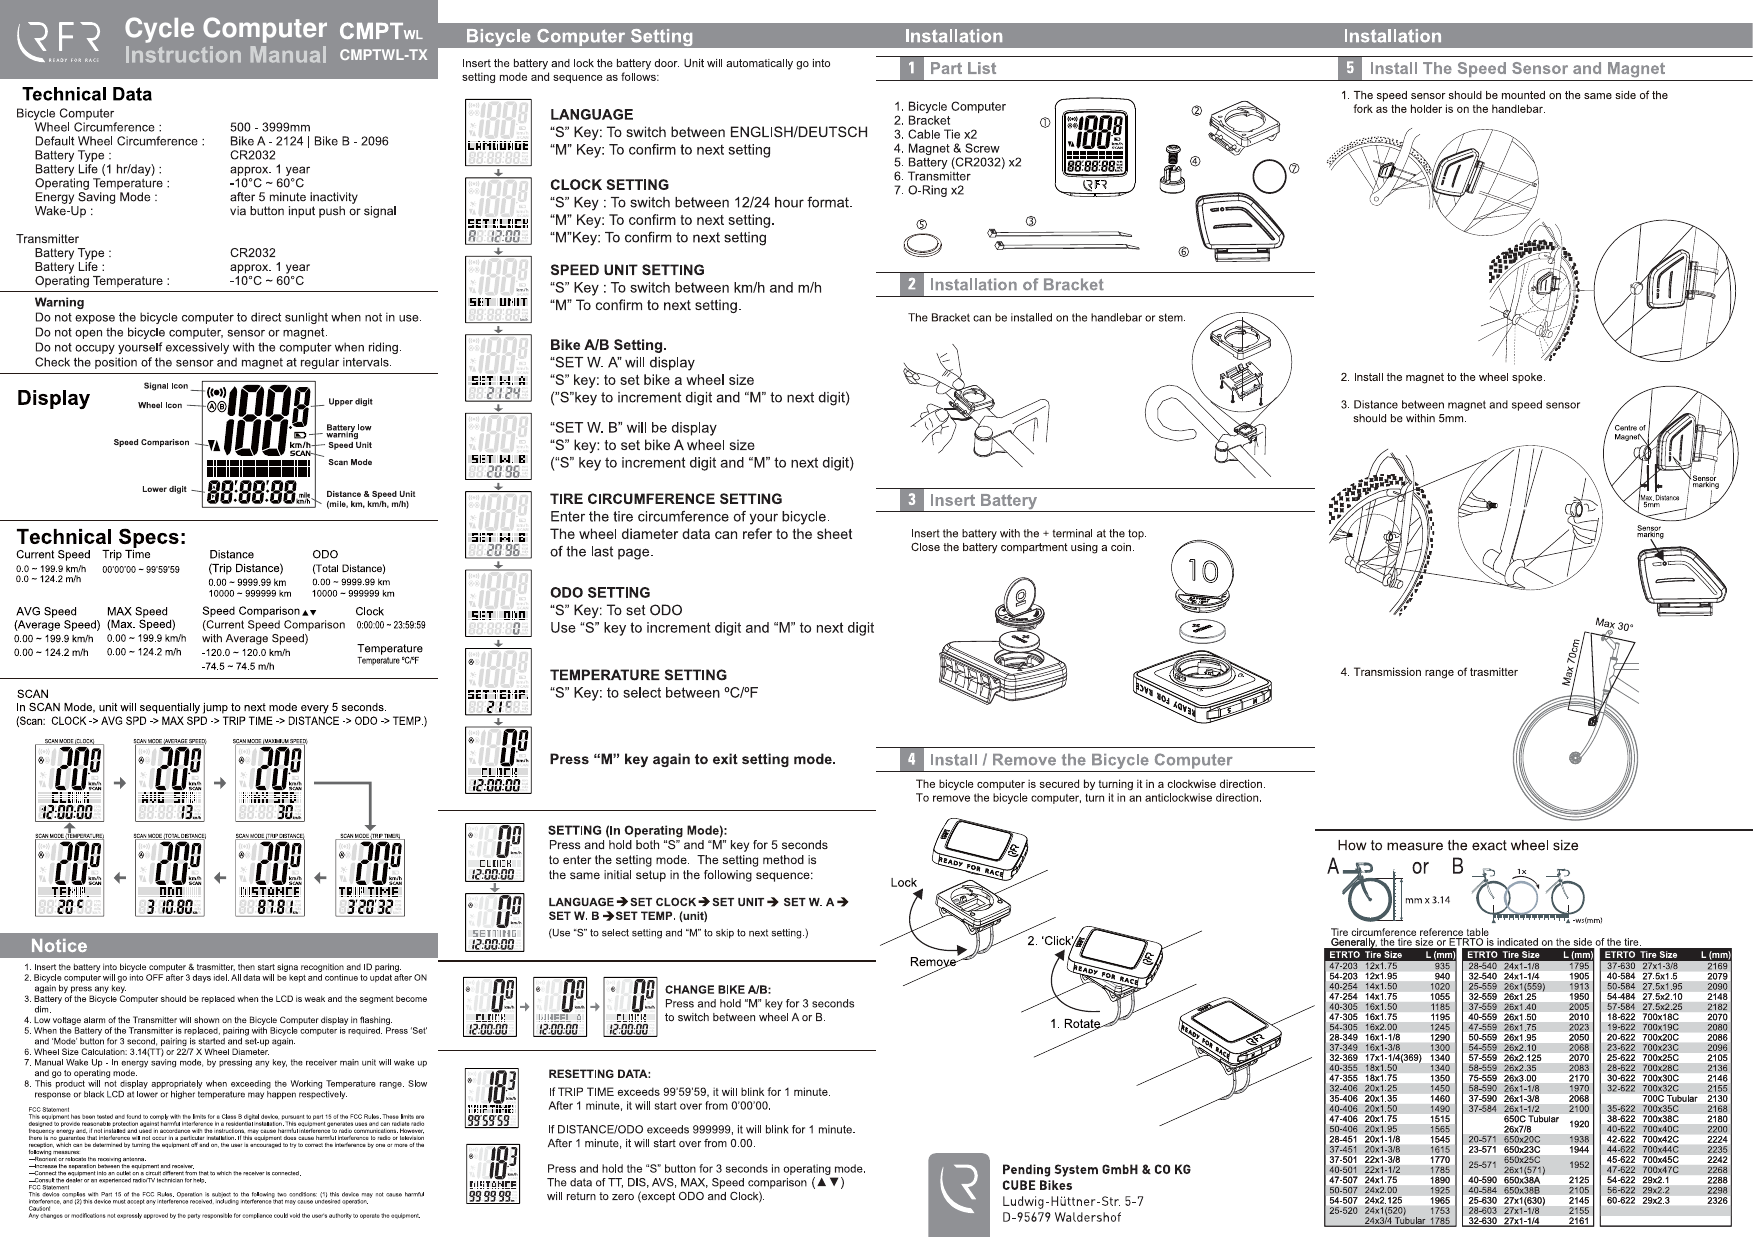 pending system and kg cmptwltx cycle computer user manual manual rfr rh usermanual wiki vr3 dive computer user manual computer user manual template